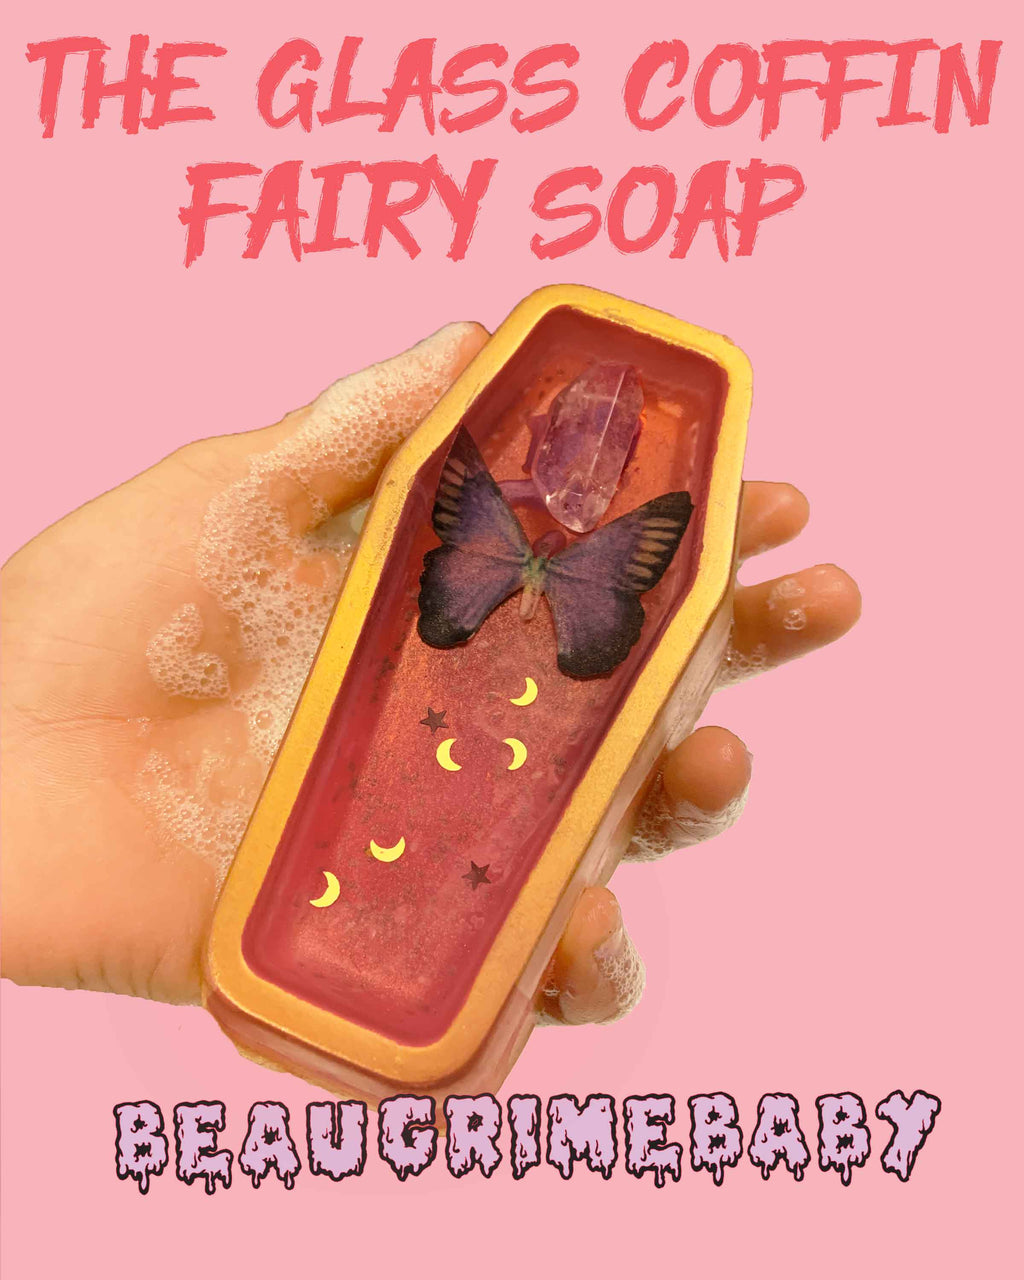 The Glass Coffin Fairy Soap